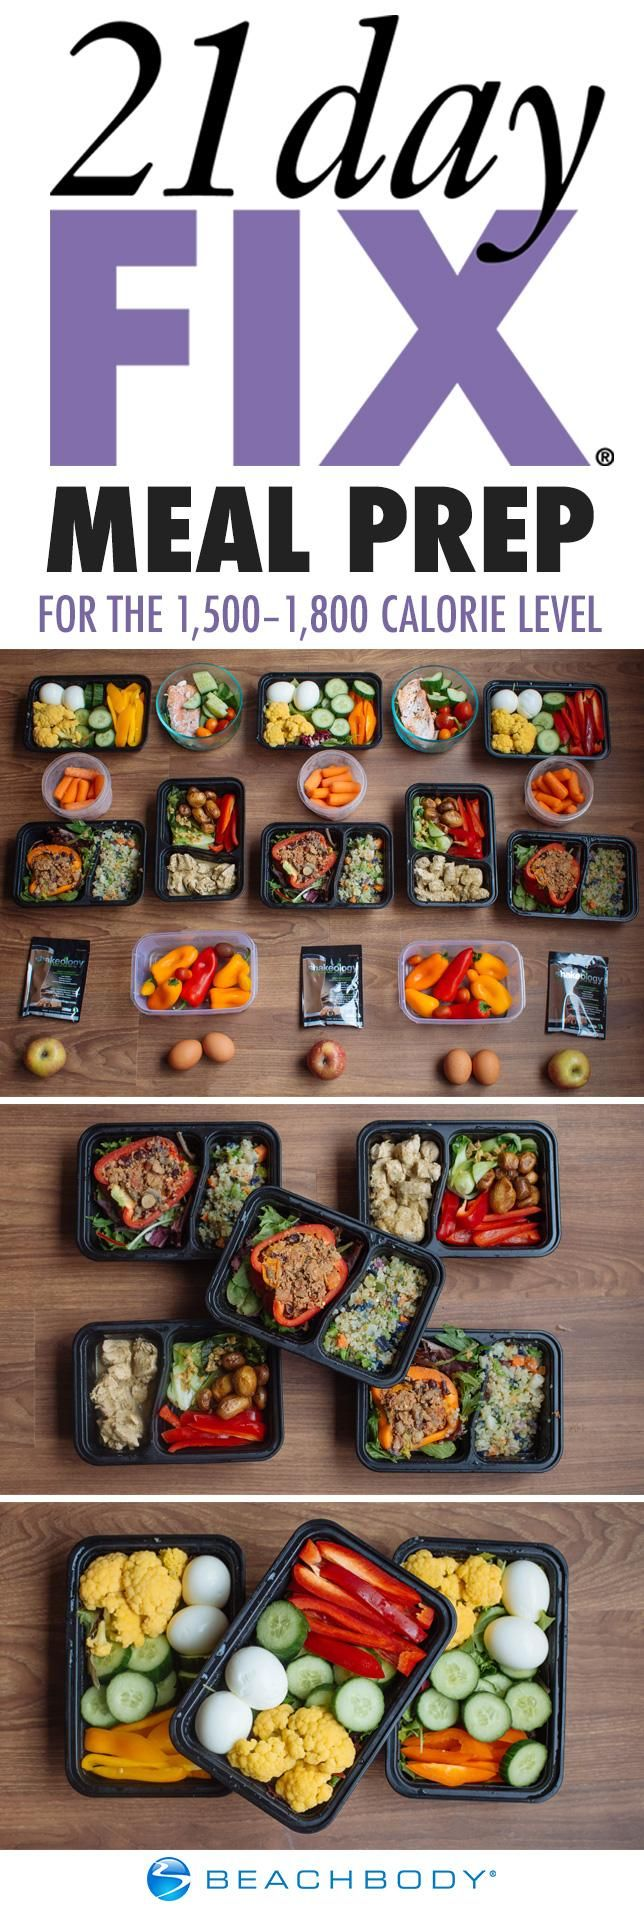 If you've fallen into a meal prep rut, it's time to try something new! Click through for a full 21 Day Fix meal prep menu, complete with tasty recipes, a grocery list, and preparation instructions. // Beachbody // BeachbodyBlog.com // 21 Day Fix Approved // nutrition // clean eating // fitfood